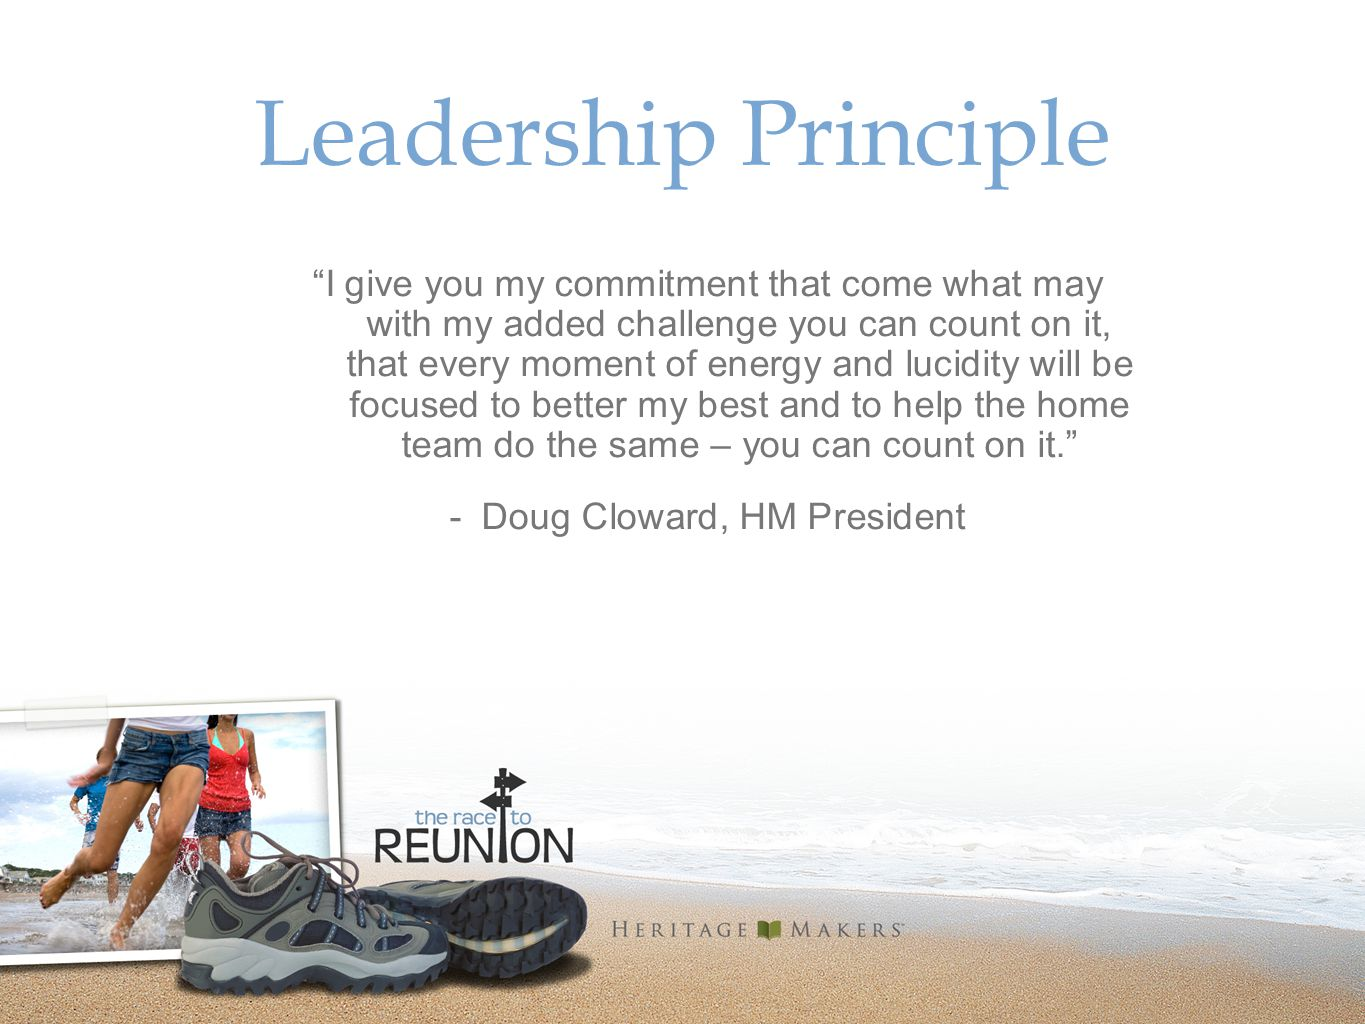 Leadership Principle I give you my commitment that come what may with my added challenge you can count on it, that every moment of energy and lucidity will be focused to better my best and to help the home team do the same – you can count on it.